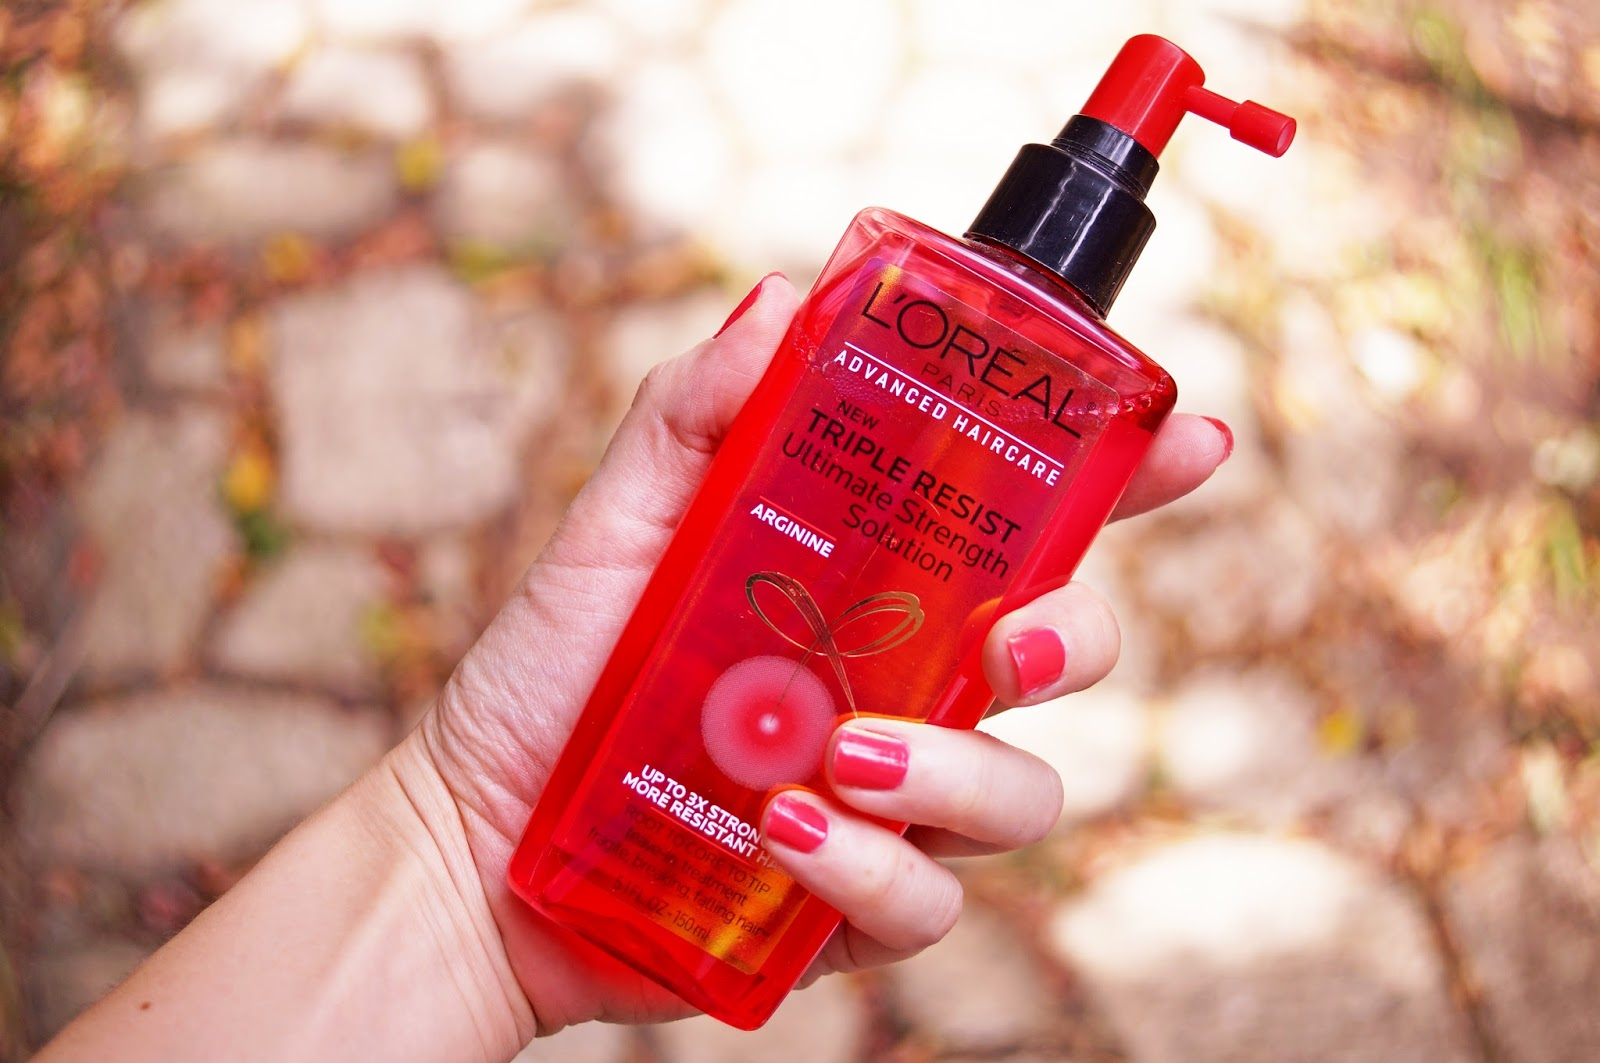 Click through for a review on the L'Oreal Triple Resist Ultimate Strength